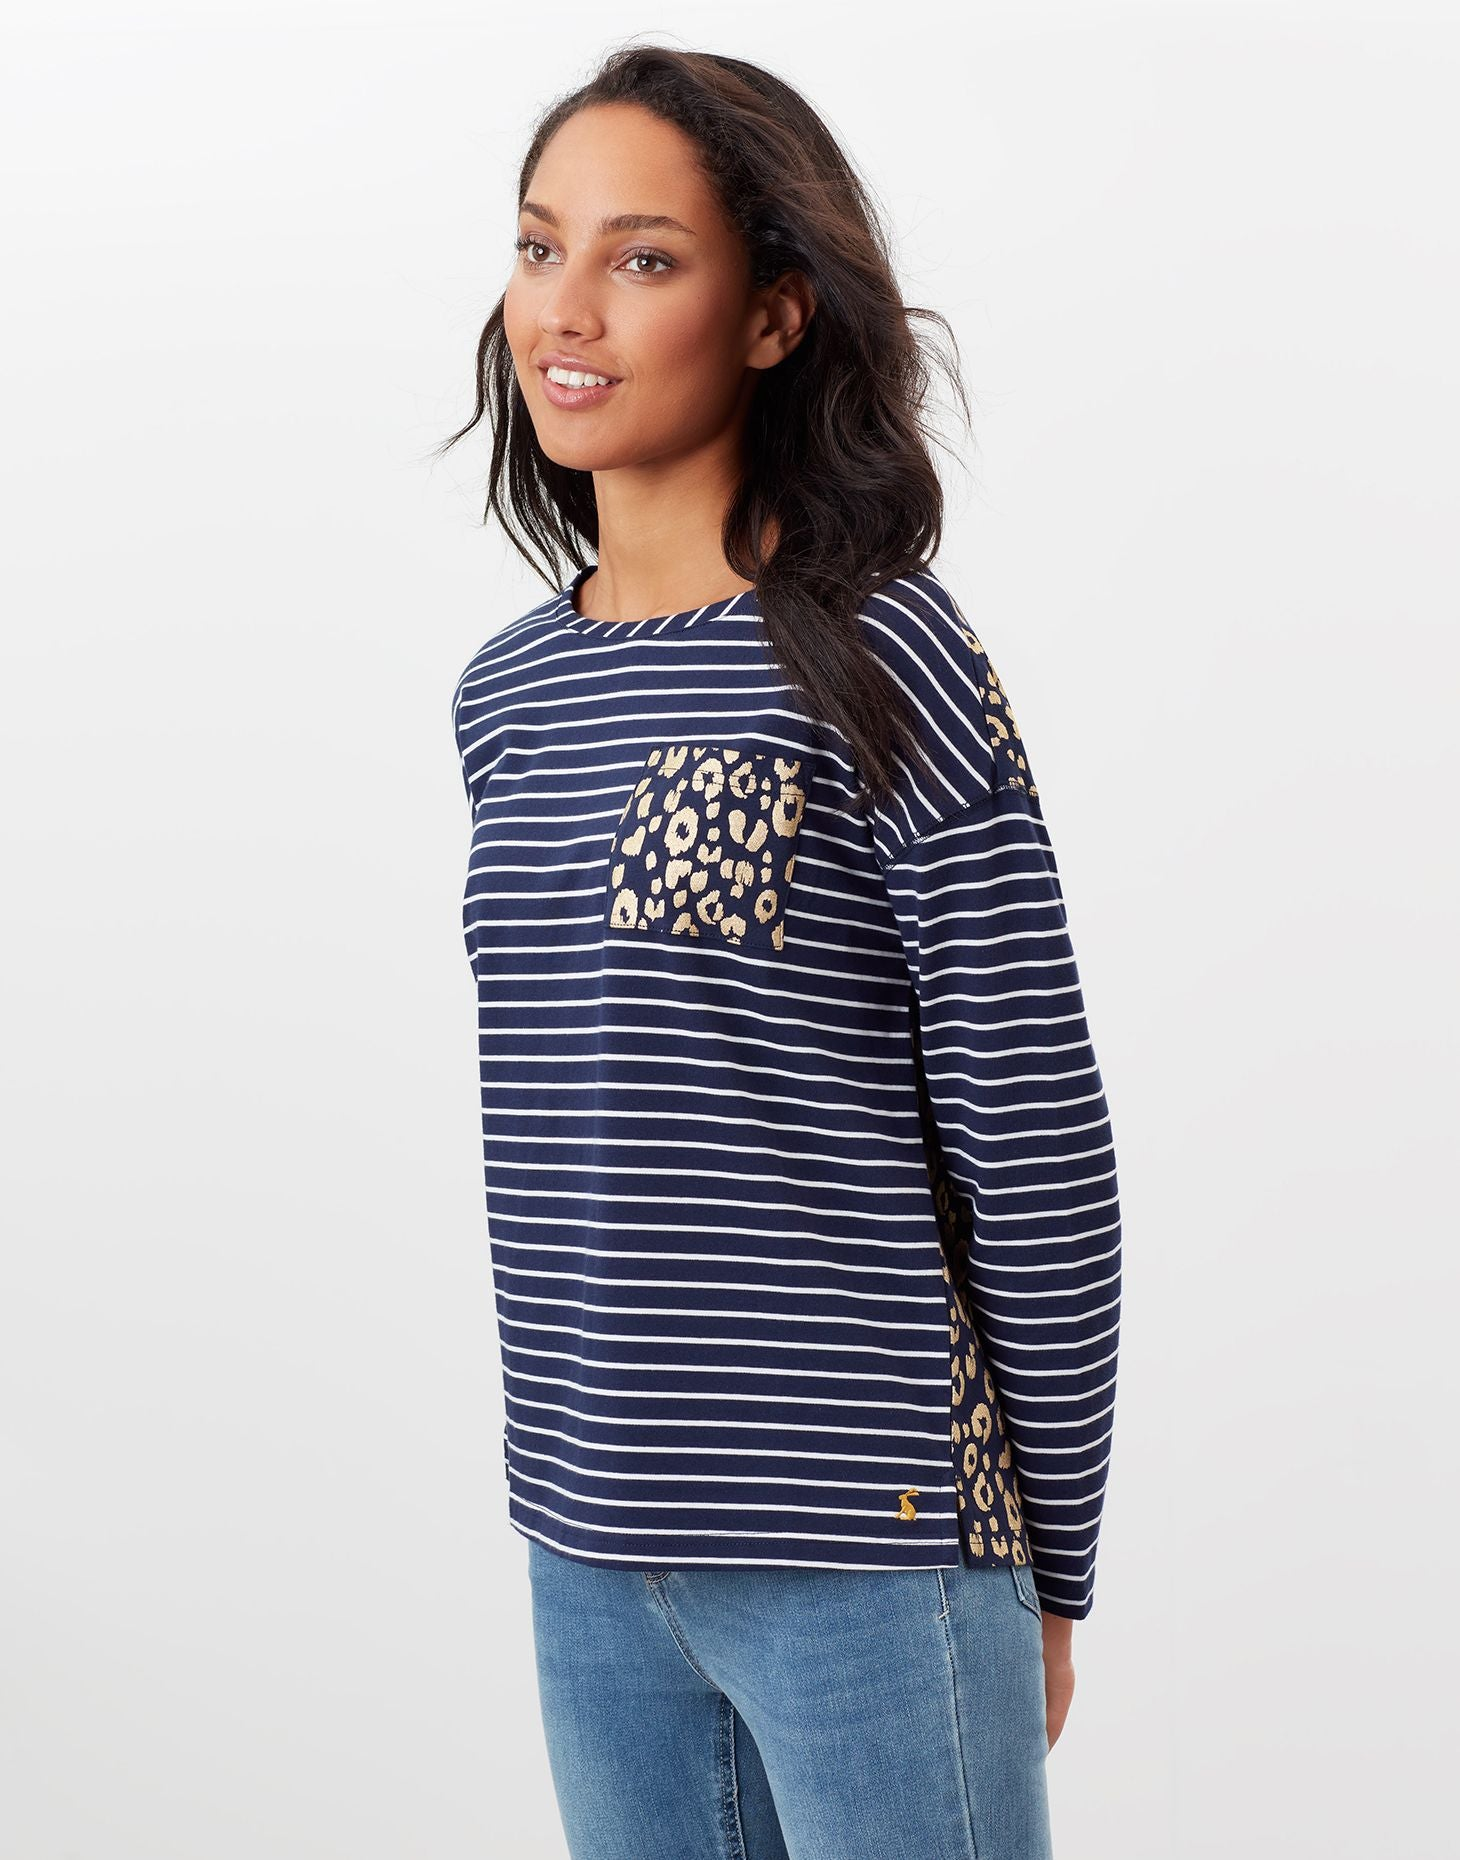 Marina Print Cream Navy Stripe Dropped Shoulder Jersey Top